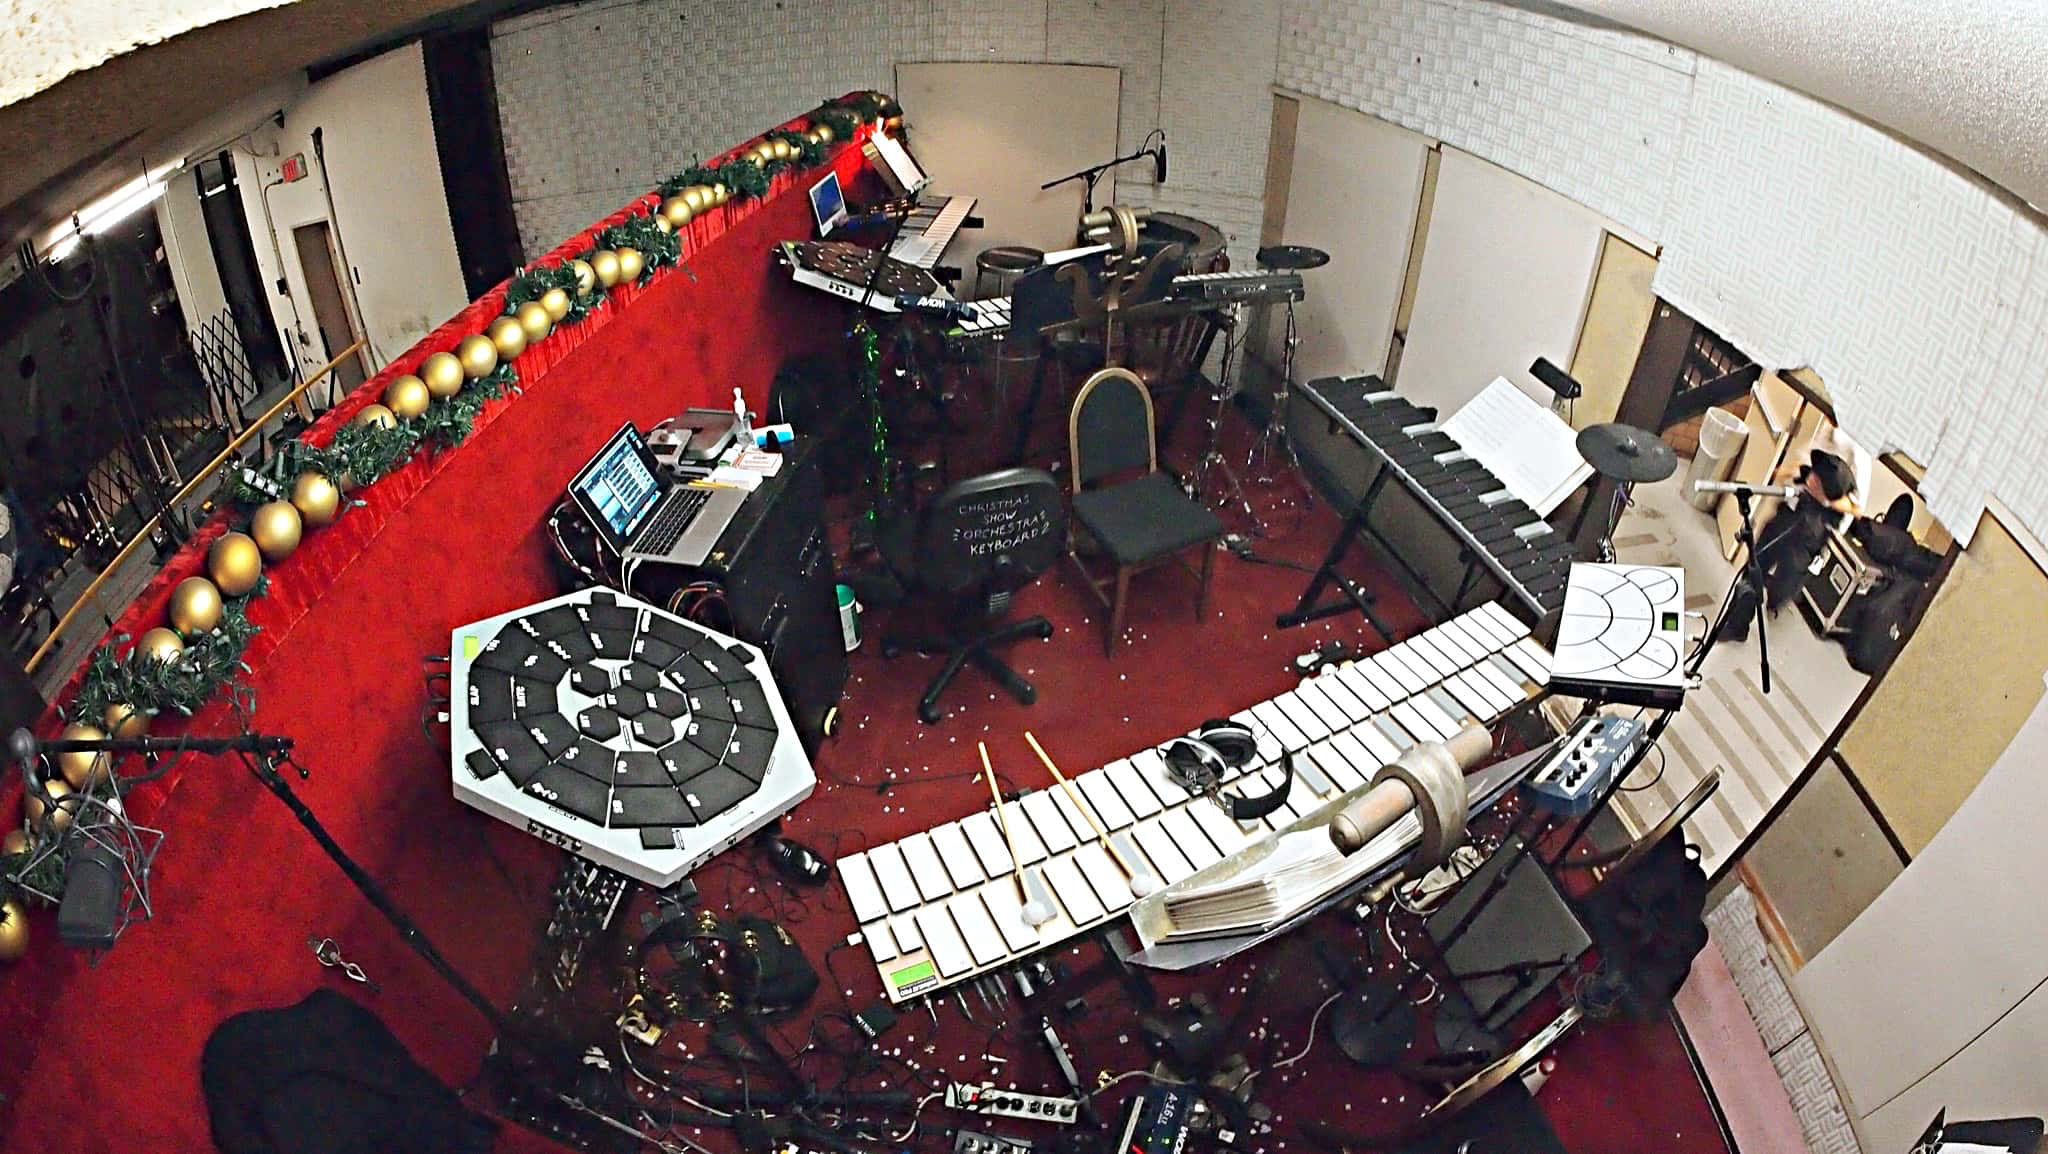 Mario DeCiutiis, Dave Roth, and Matt Beaumont's percussion setup for the Radio City Christmas Spectacular in New York City.